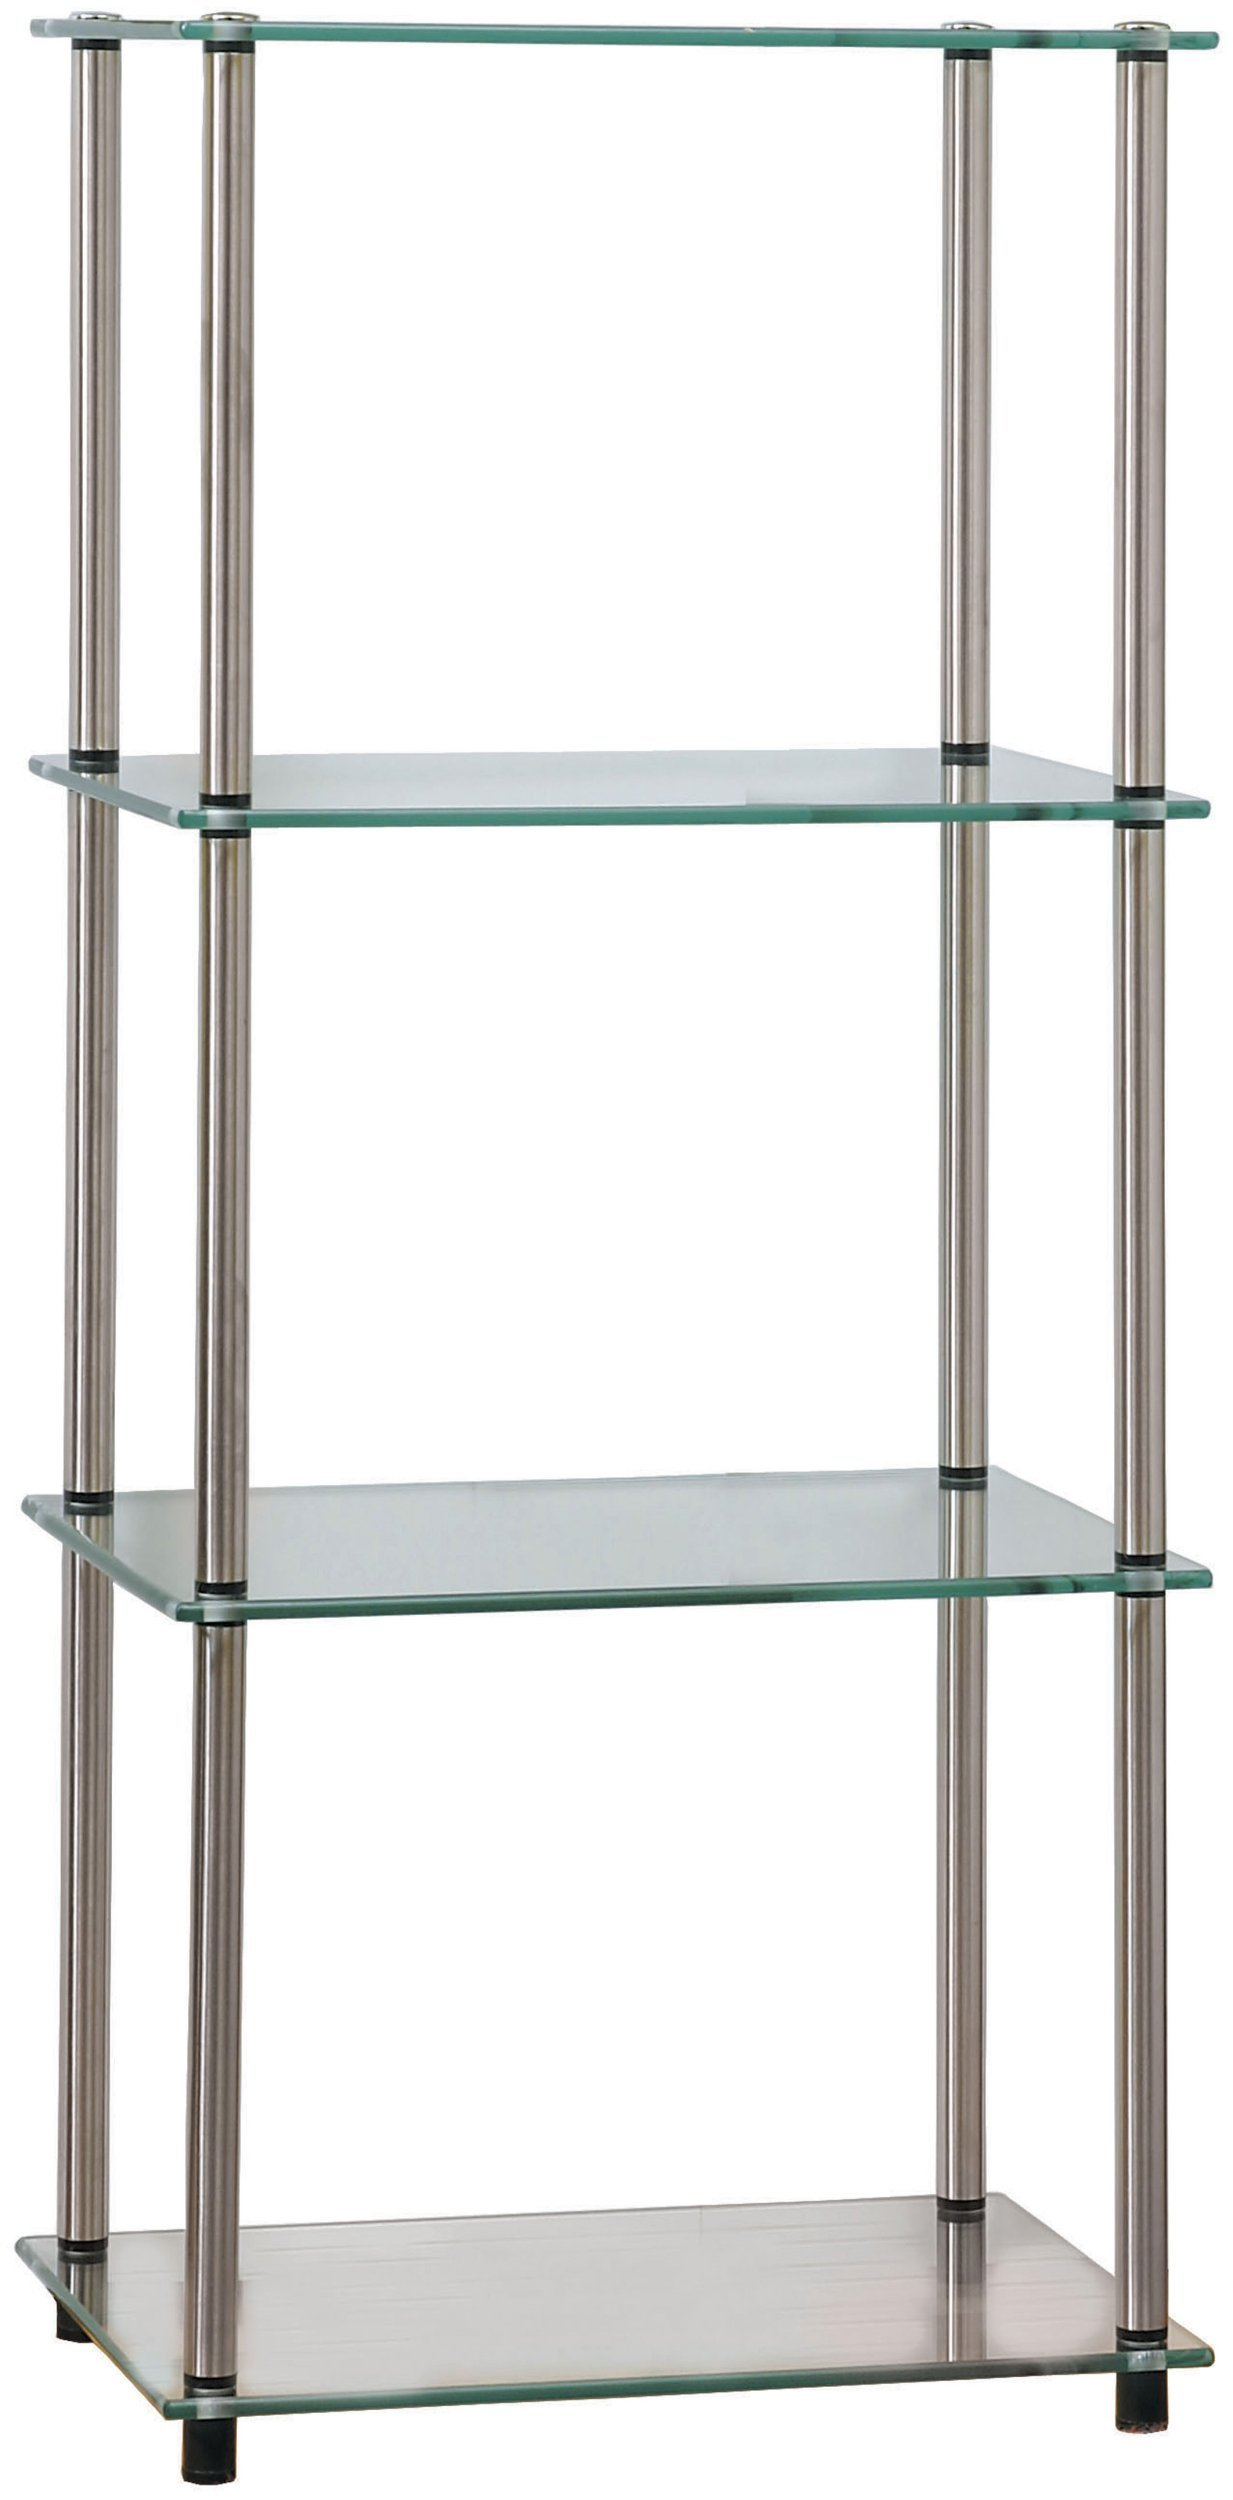 Convenience Concepts Designs2Go Go-Accsense 4-Tier Glass Tower, Clear Glass by Convenience Concepts